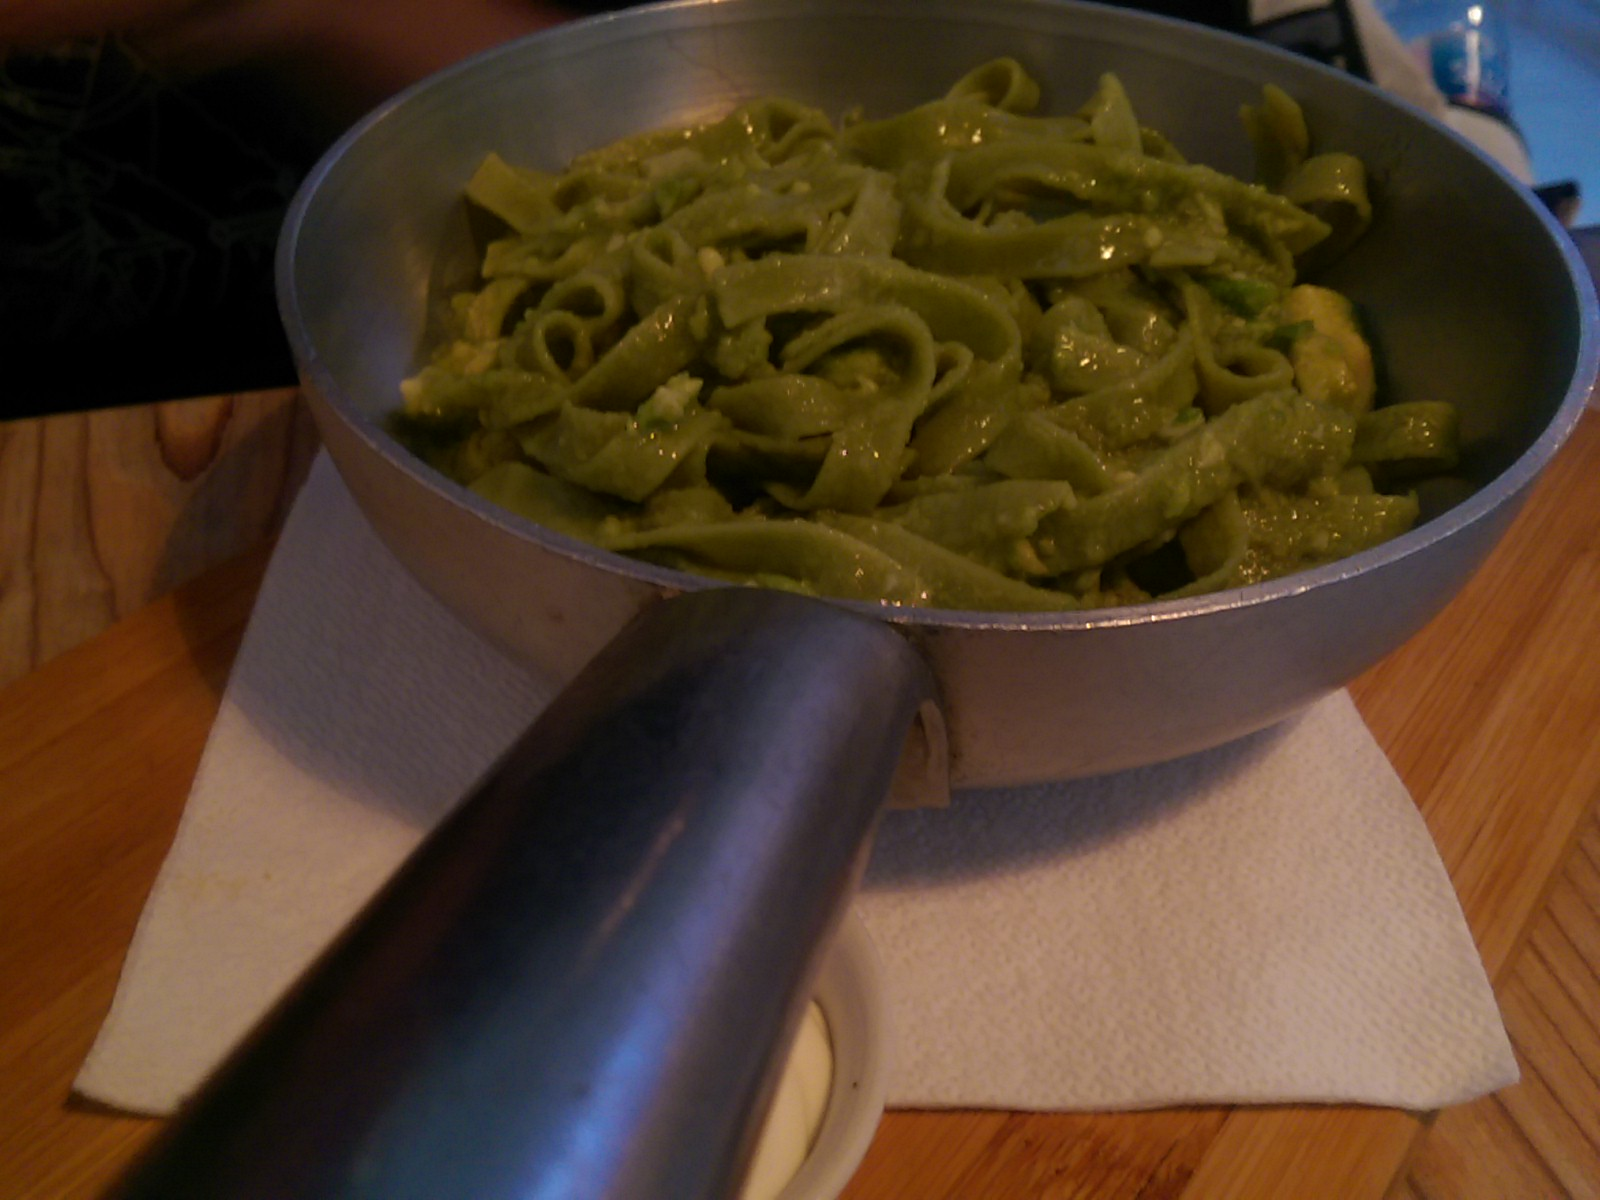 A metal pan with green strands of thick pasta